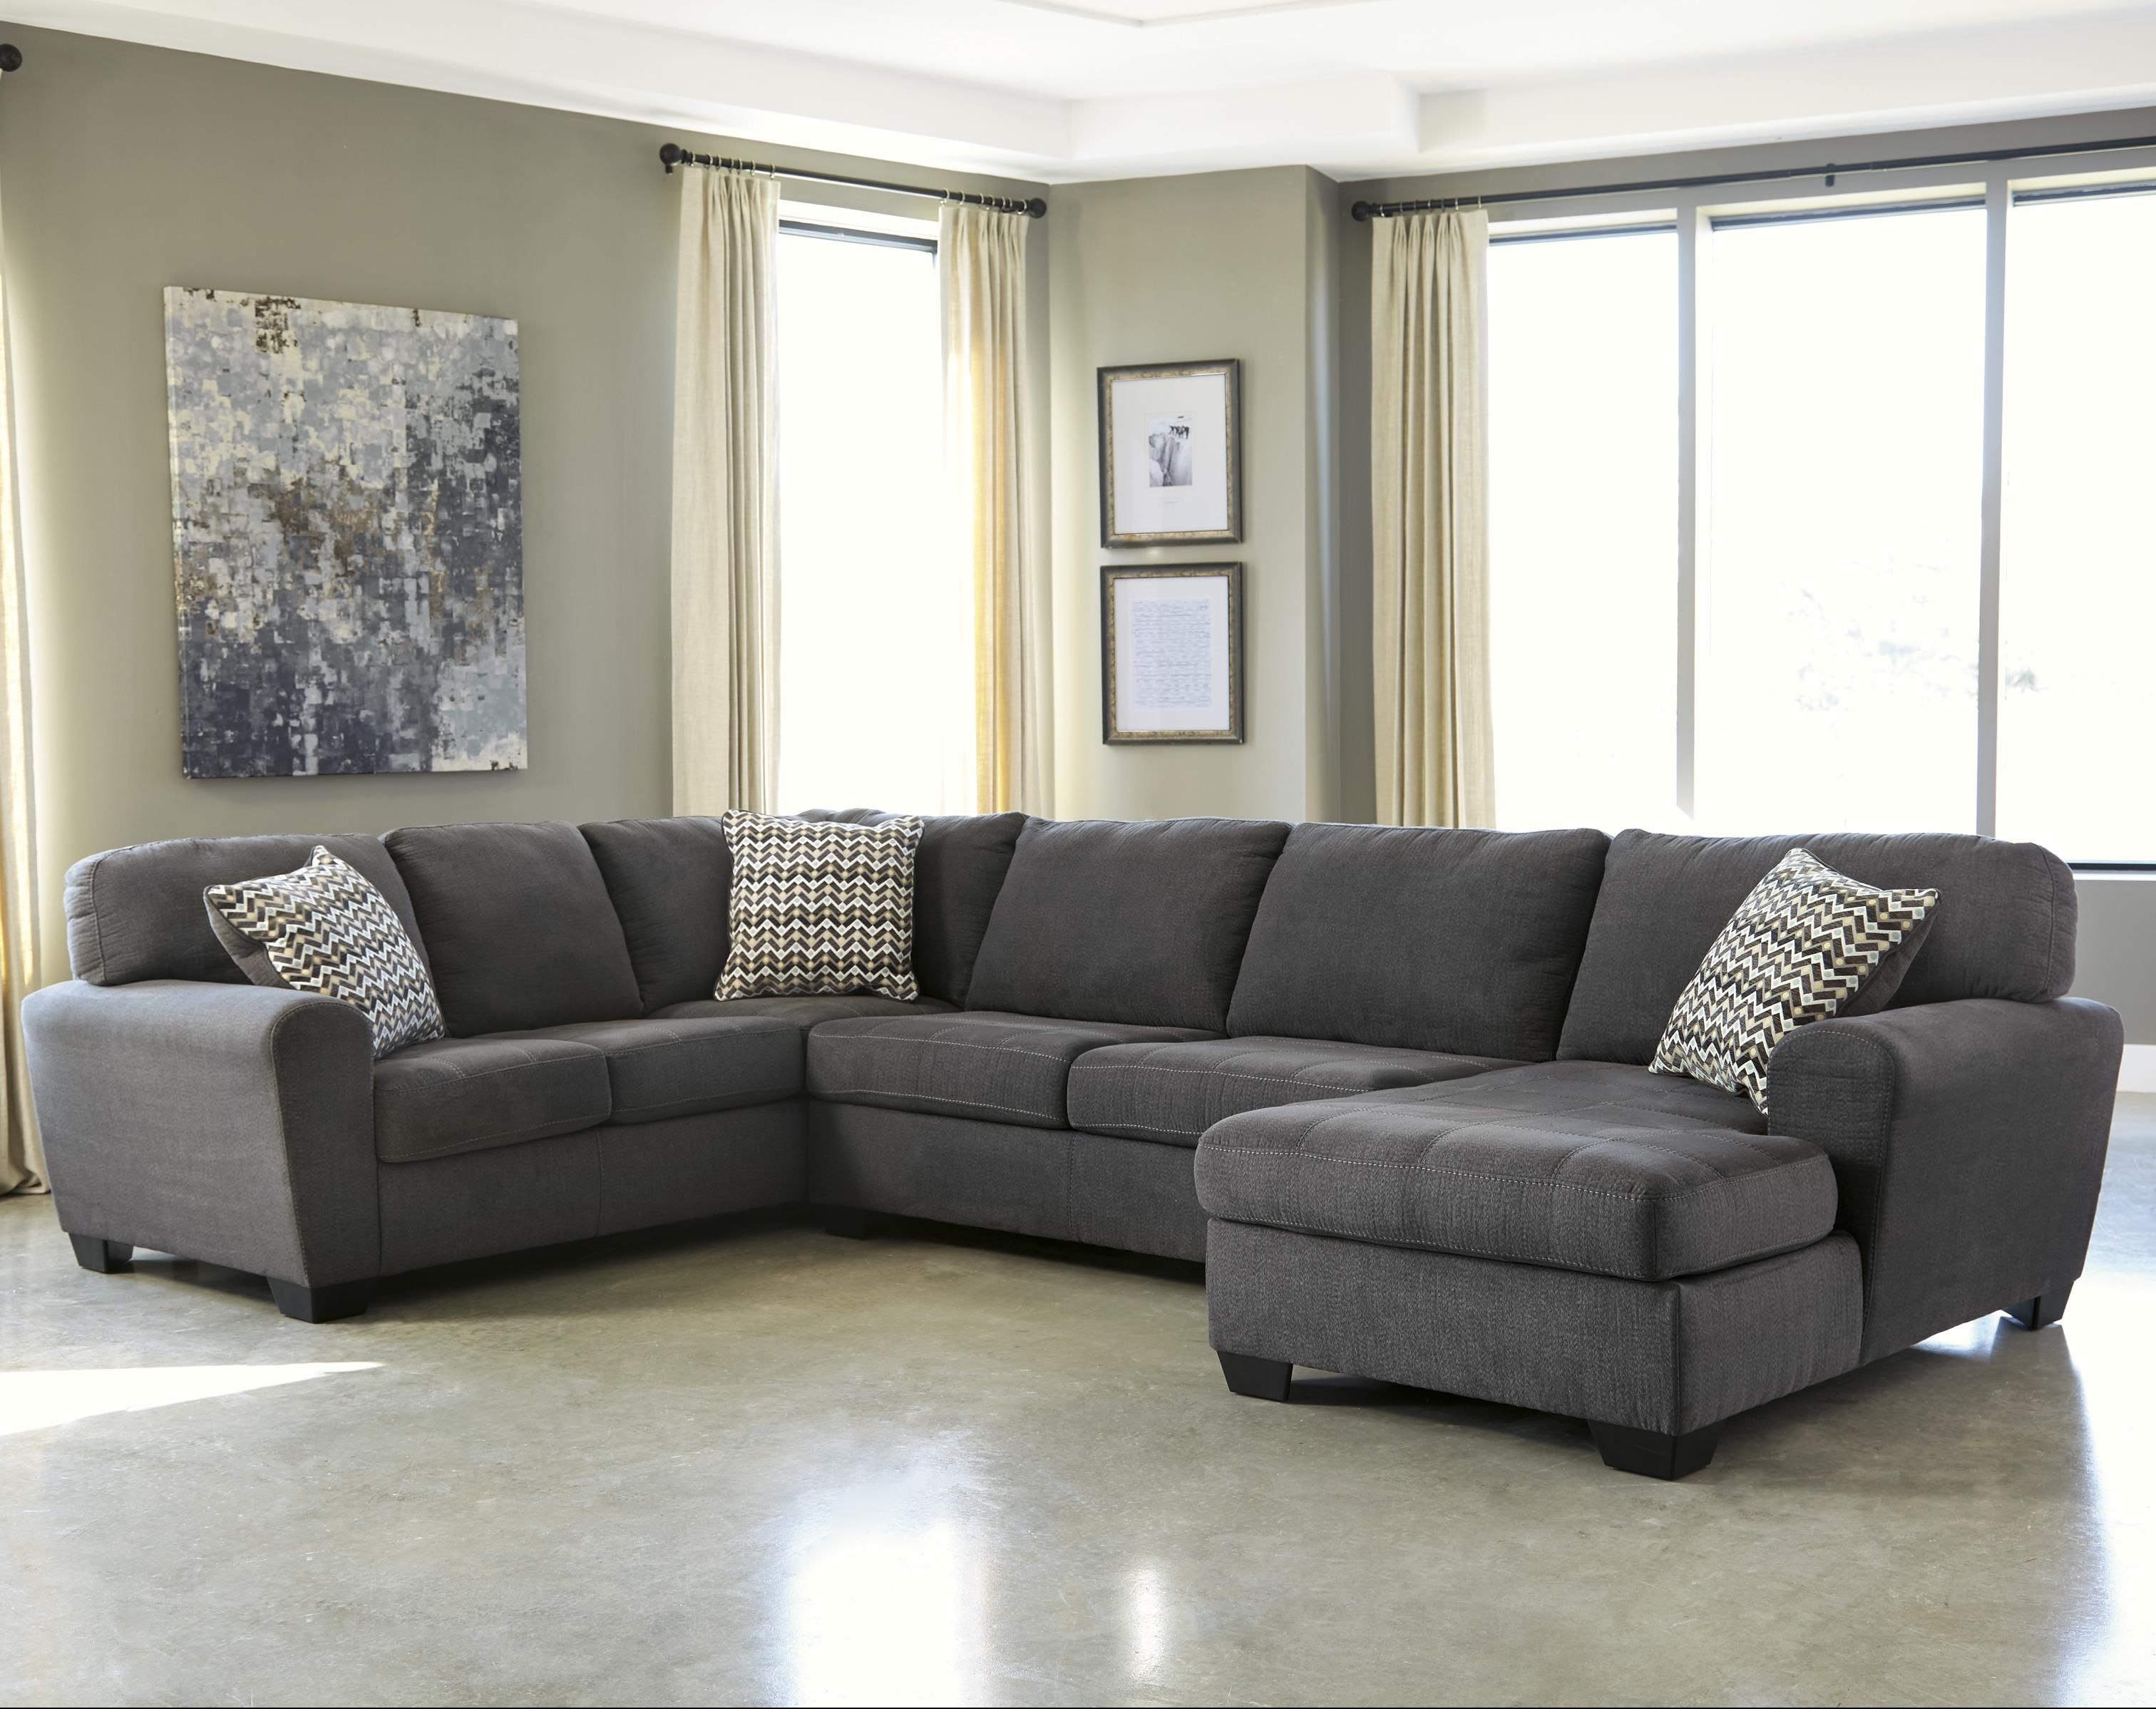 Best Sorenton 3 Piece Sectional With Chaise By Benchcraft 400 x 300